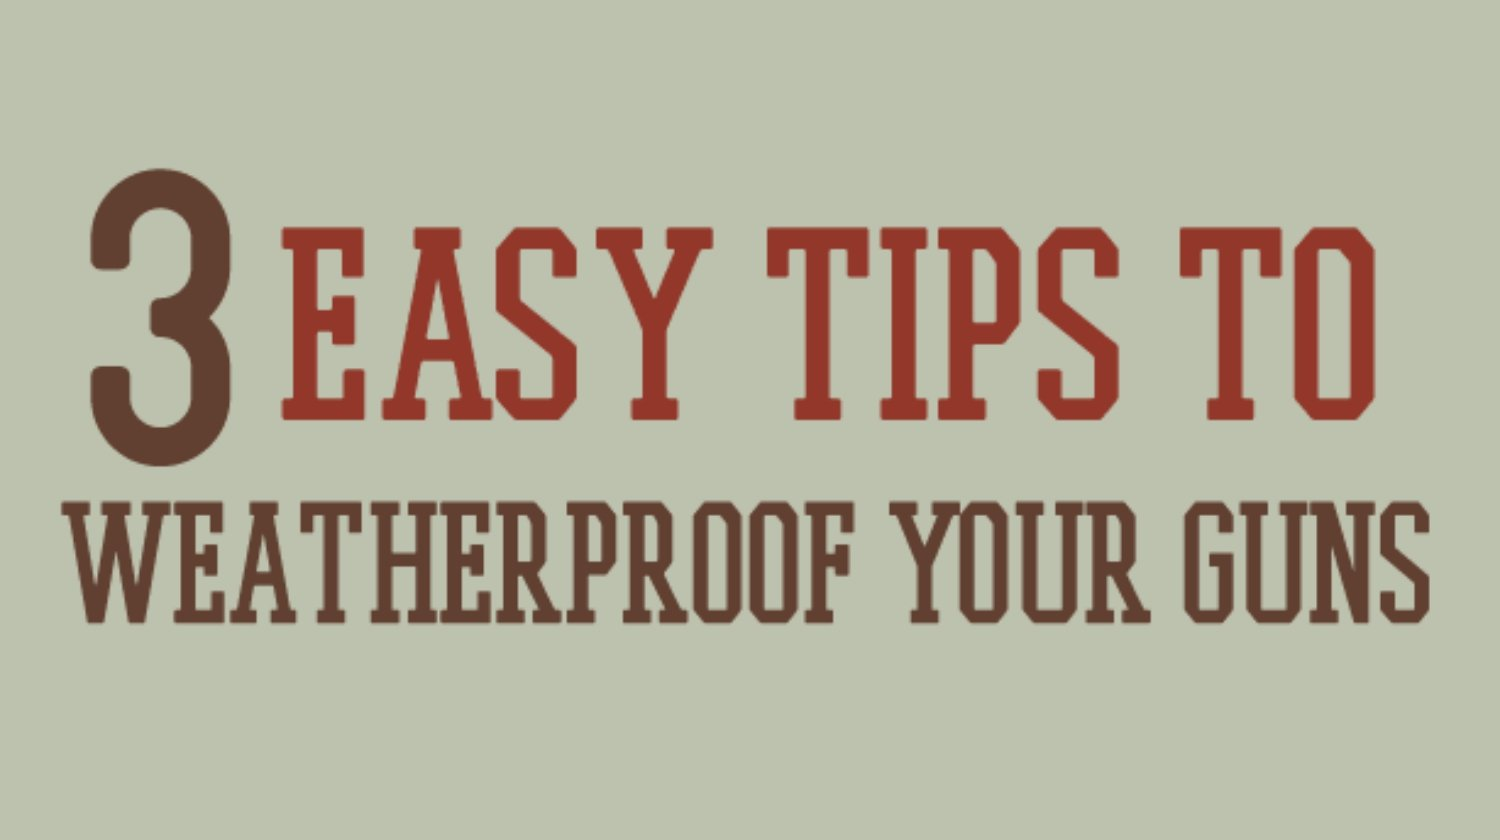 3 easy tips | Easy Tips To Weatherproof Your Guns | weatherproof your guns | wet rifle | Featured